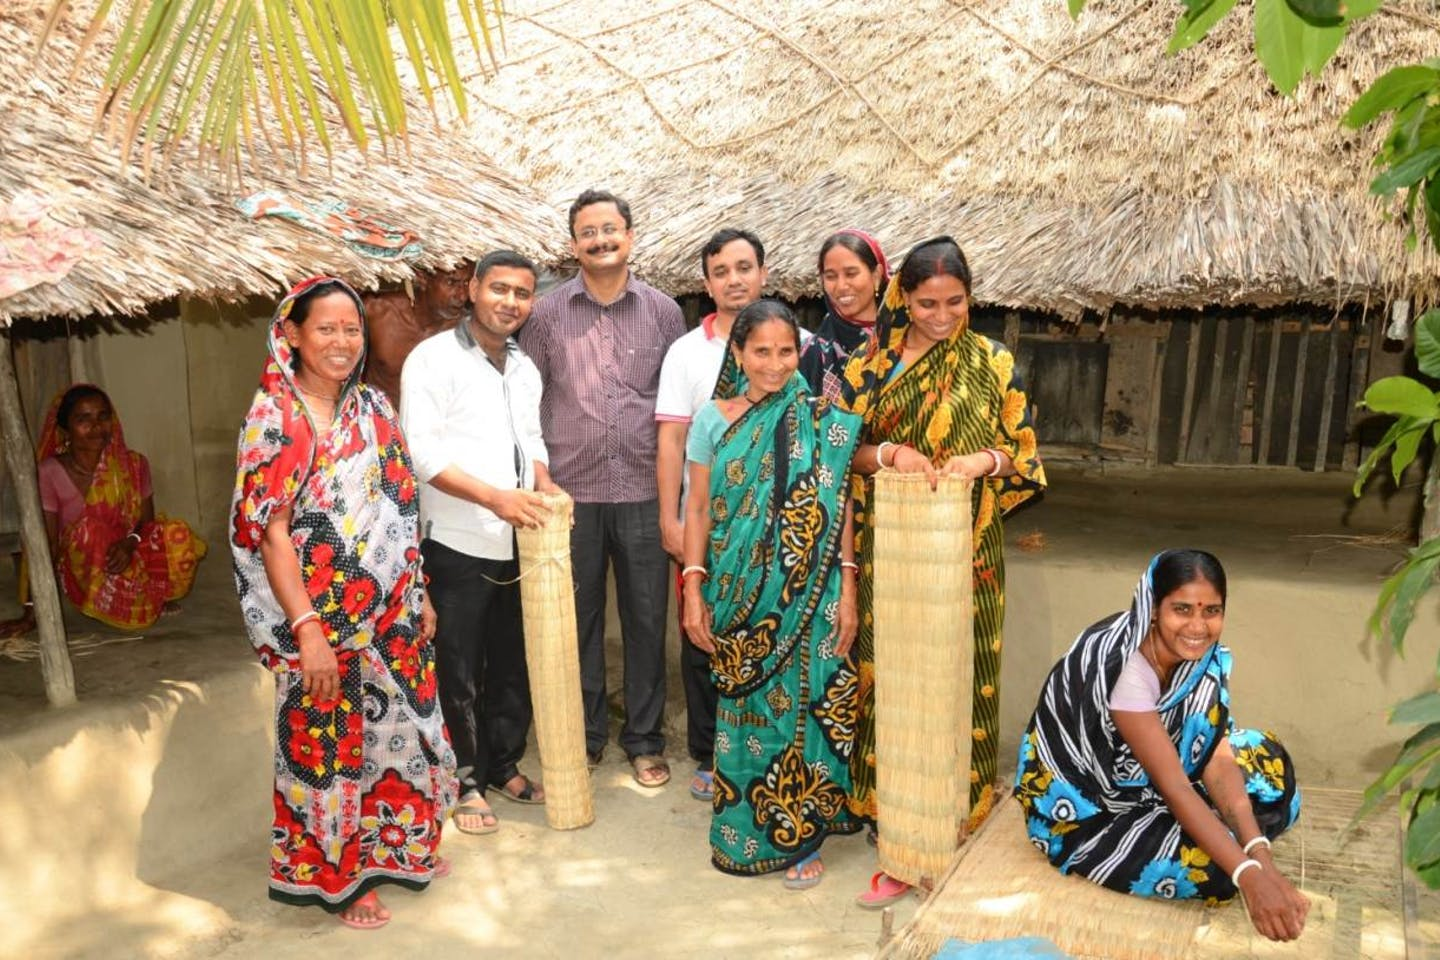 Sundarban women in Bangladesh sell reed mats